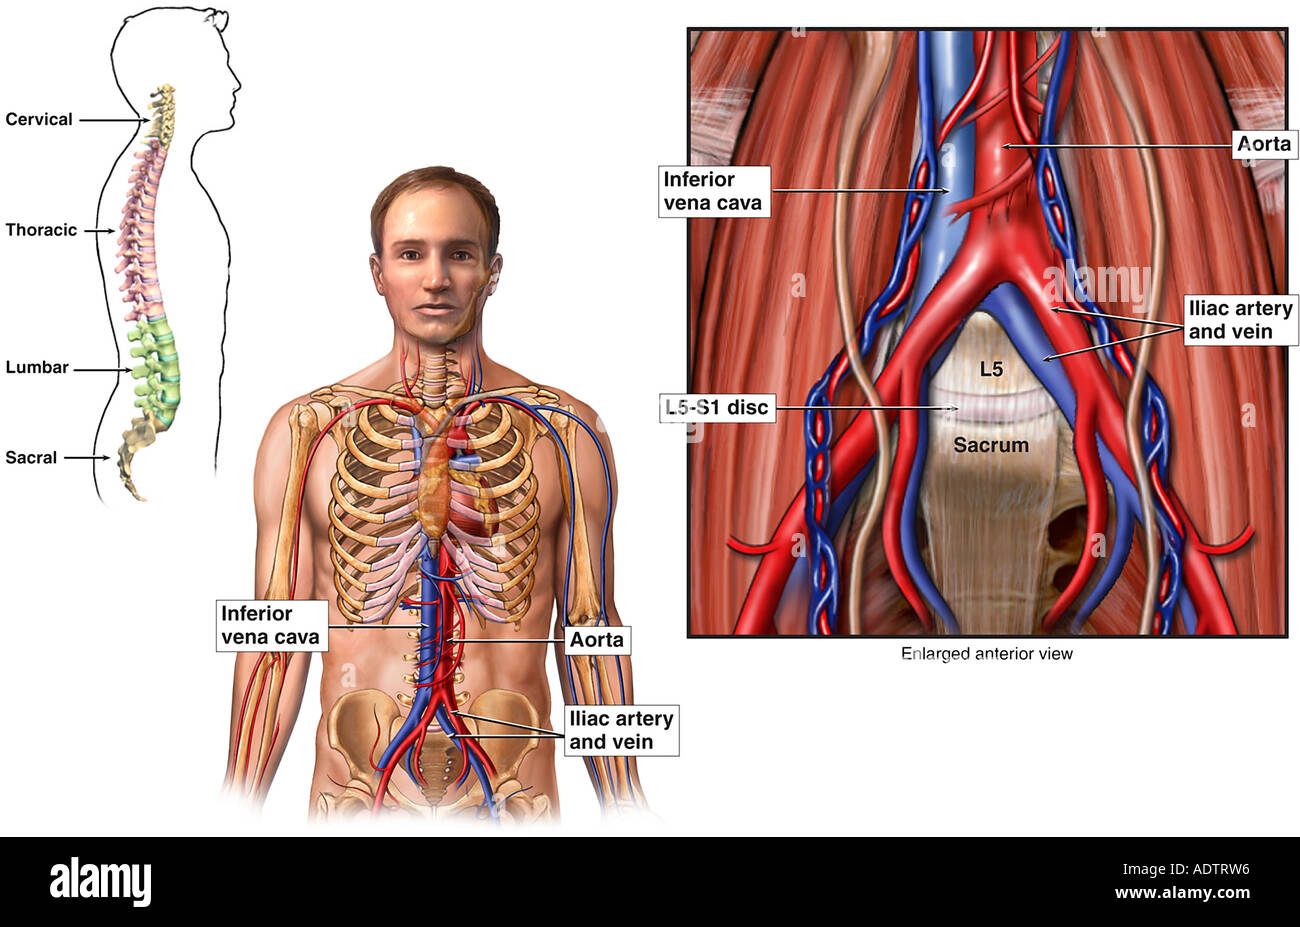 Anatomy Of The Abdominal Blood Vessels Stock Photo 7710165 Alamy